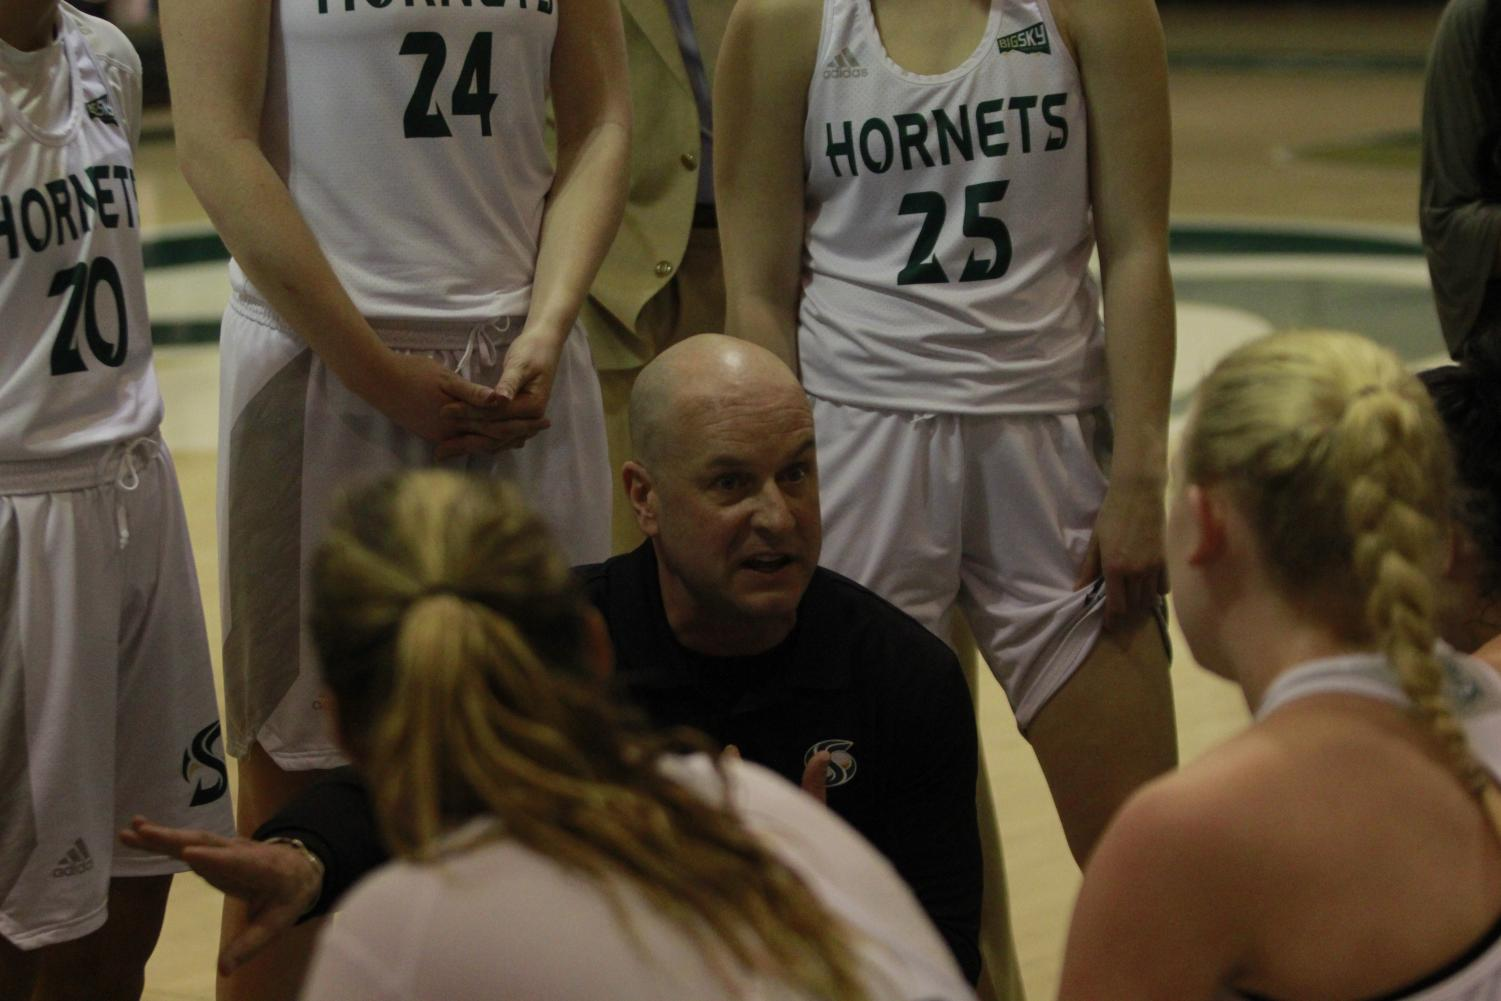 Sac State head coach Bunky Harkleroad talks to his team during a timeout huddle in a 69-65 loss to Idaho Saturday at the Nest. The Hornets have two regular seasons games left on the road before the Big Sky Conference tournament in Boise, Idaho begins March 11.